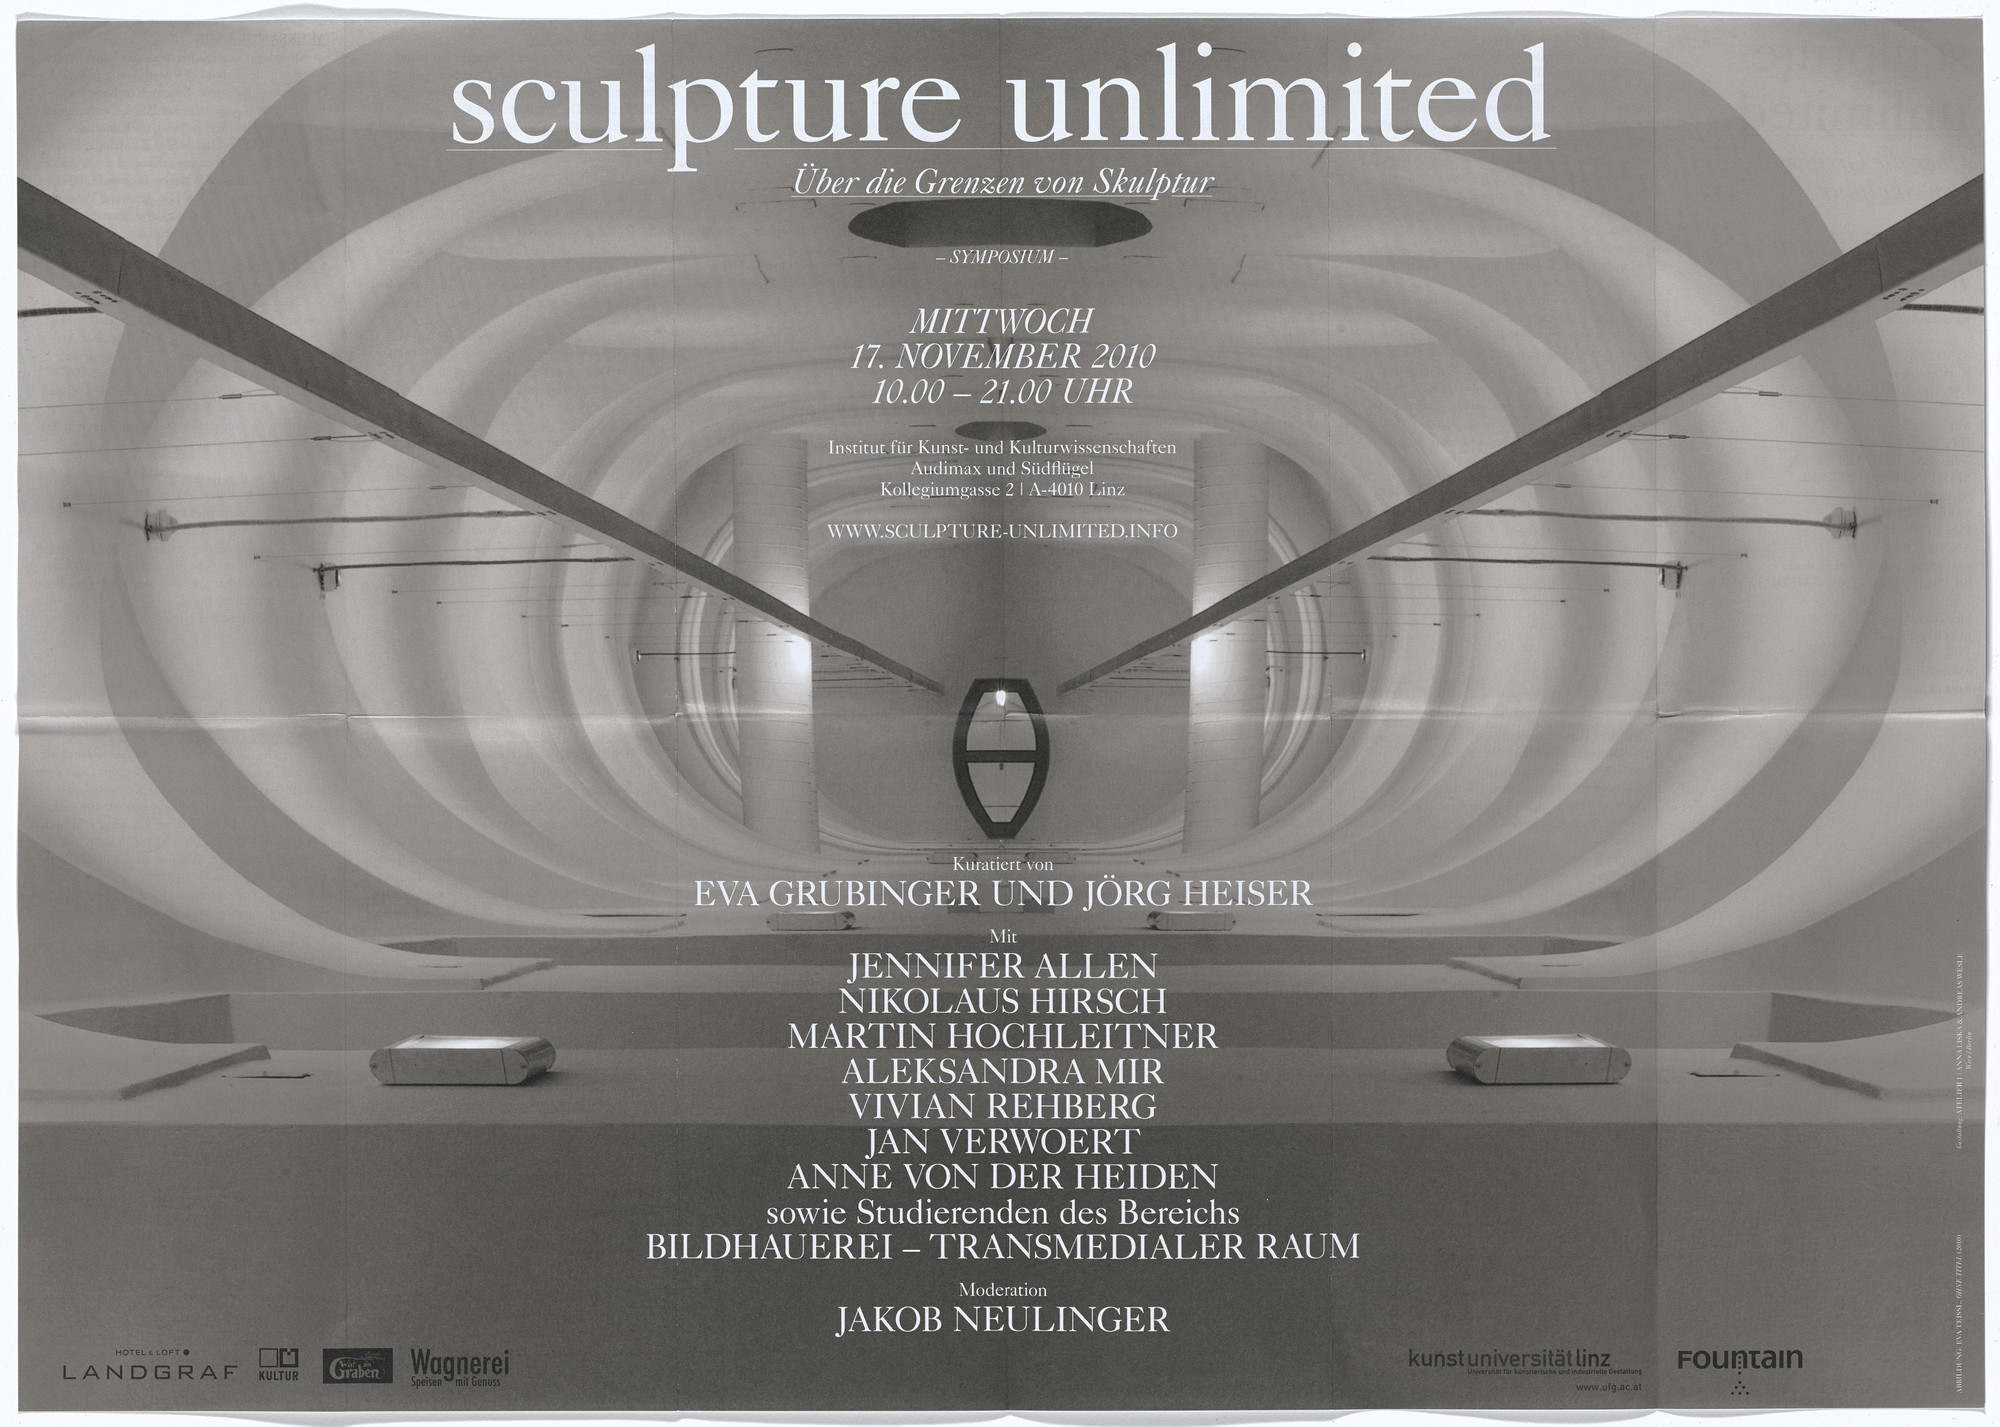 Aleksandra Mir. Poster for Sculpture Unlimited symposium, Institute of Fine Arts and Cultural Studies, Kunstuniversität Linz, Austria, November 17, 2010. 2010–11